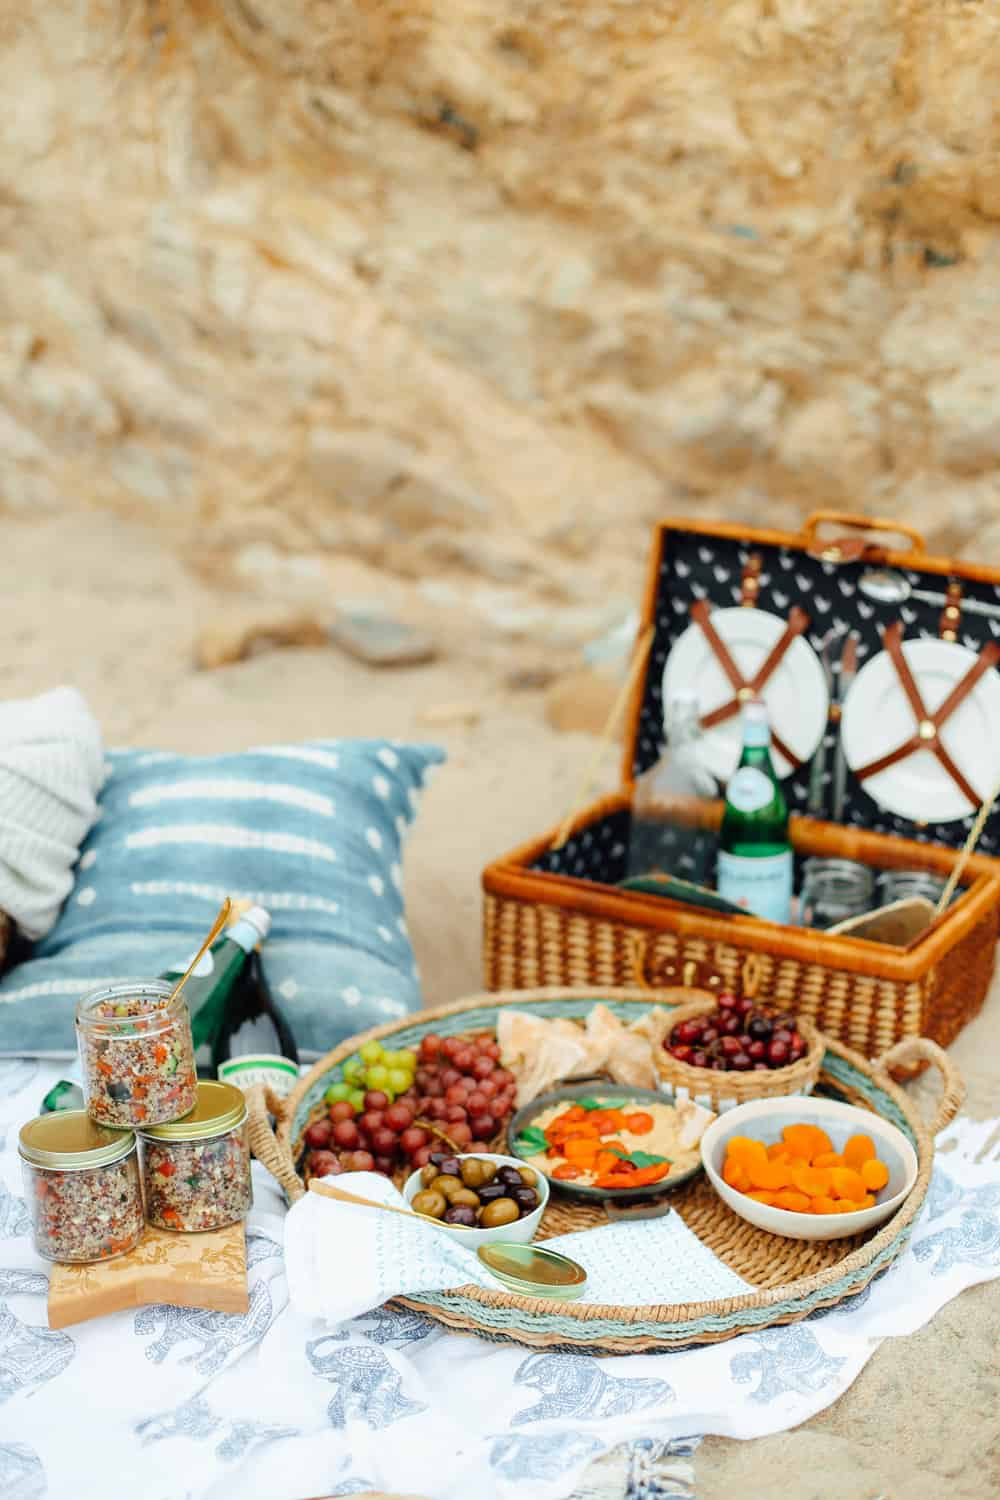 Grapes Pita Cherries Apricots Olives and Hummus in a wicker basket and sparkling water glasses and plates in a picnic basket with towels on the beach